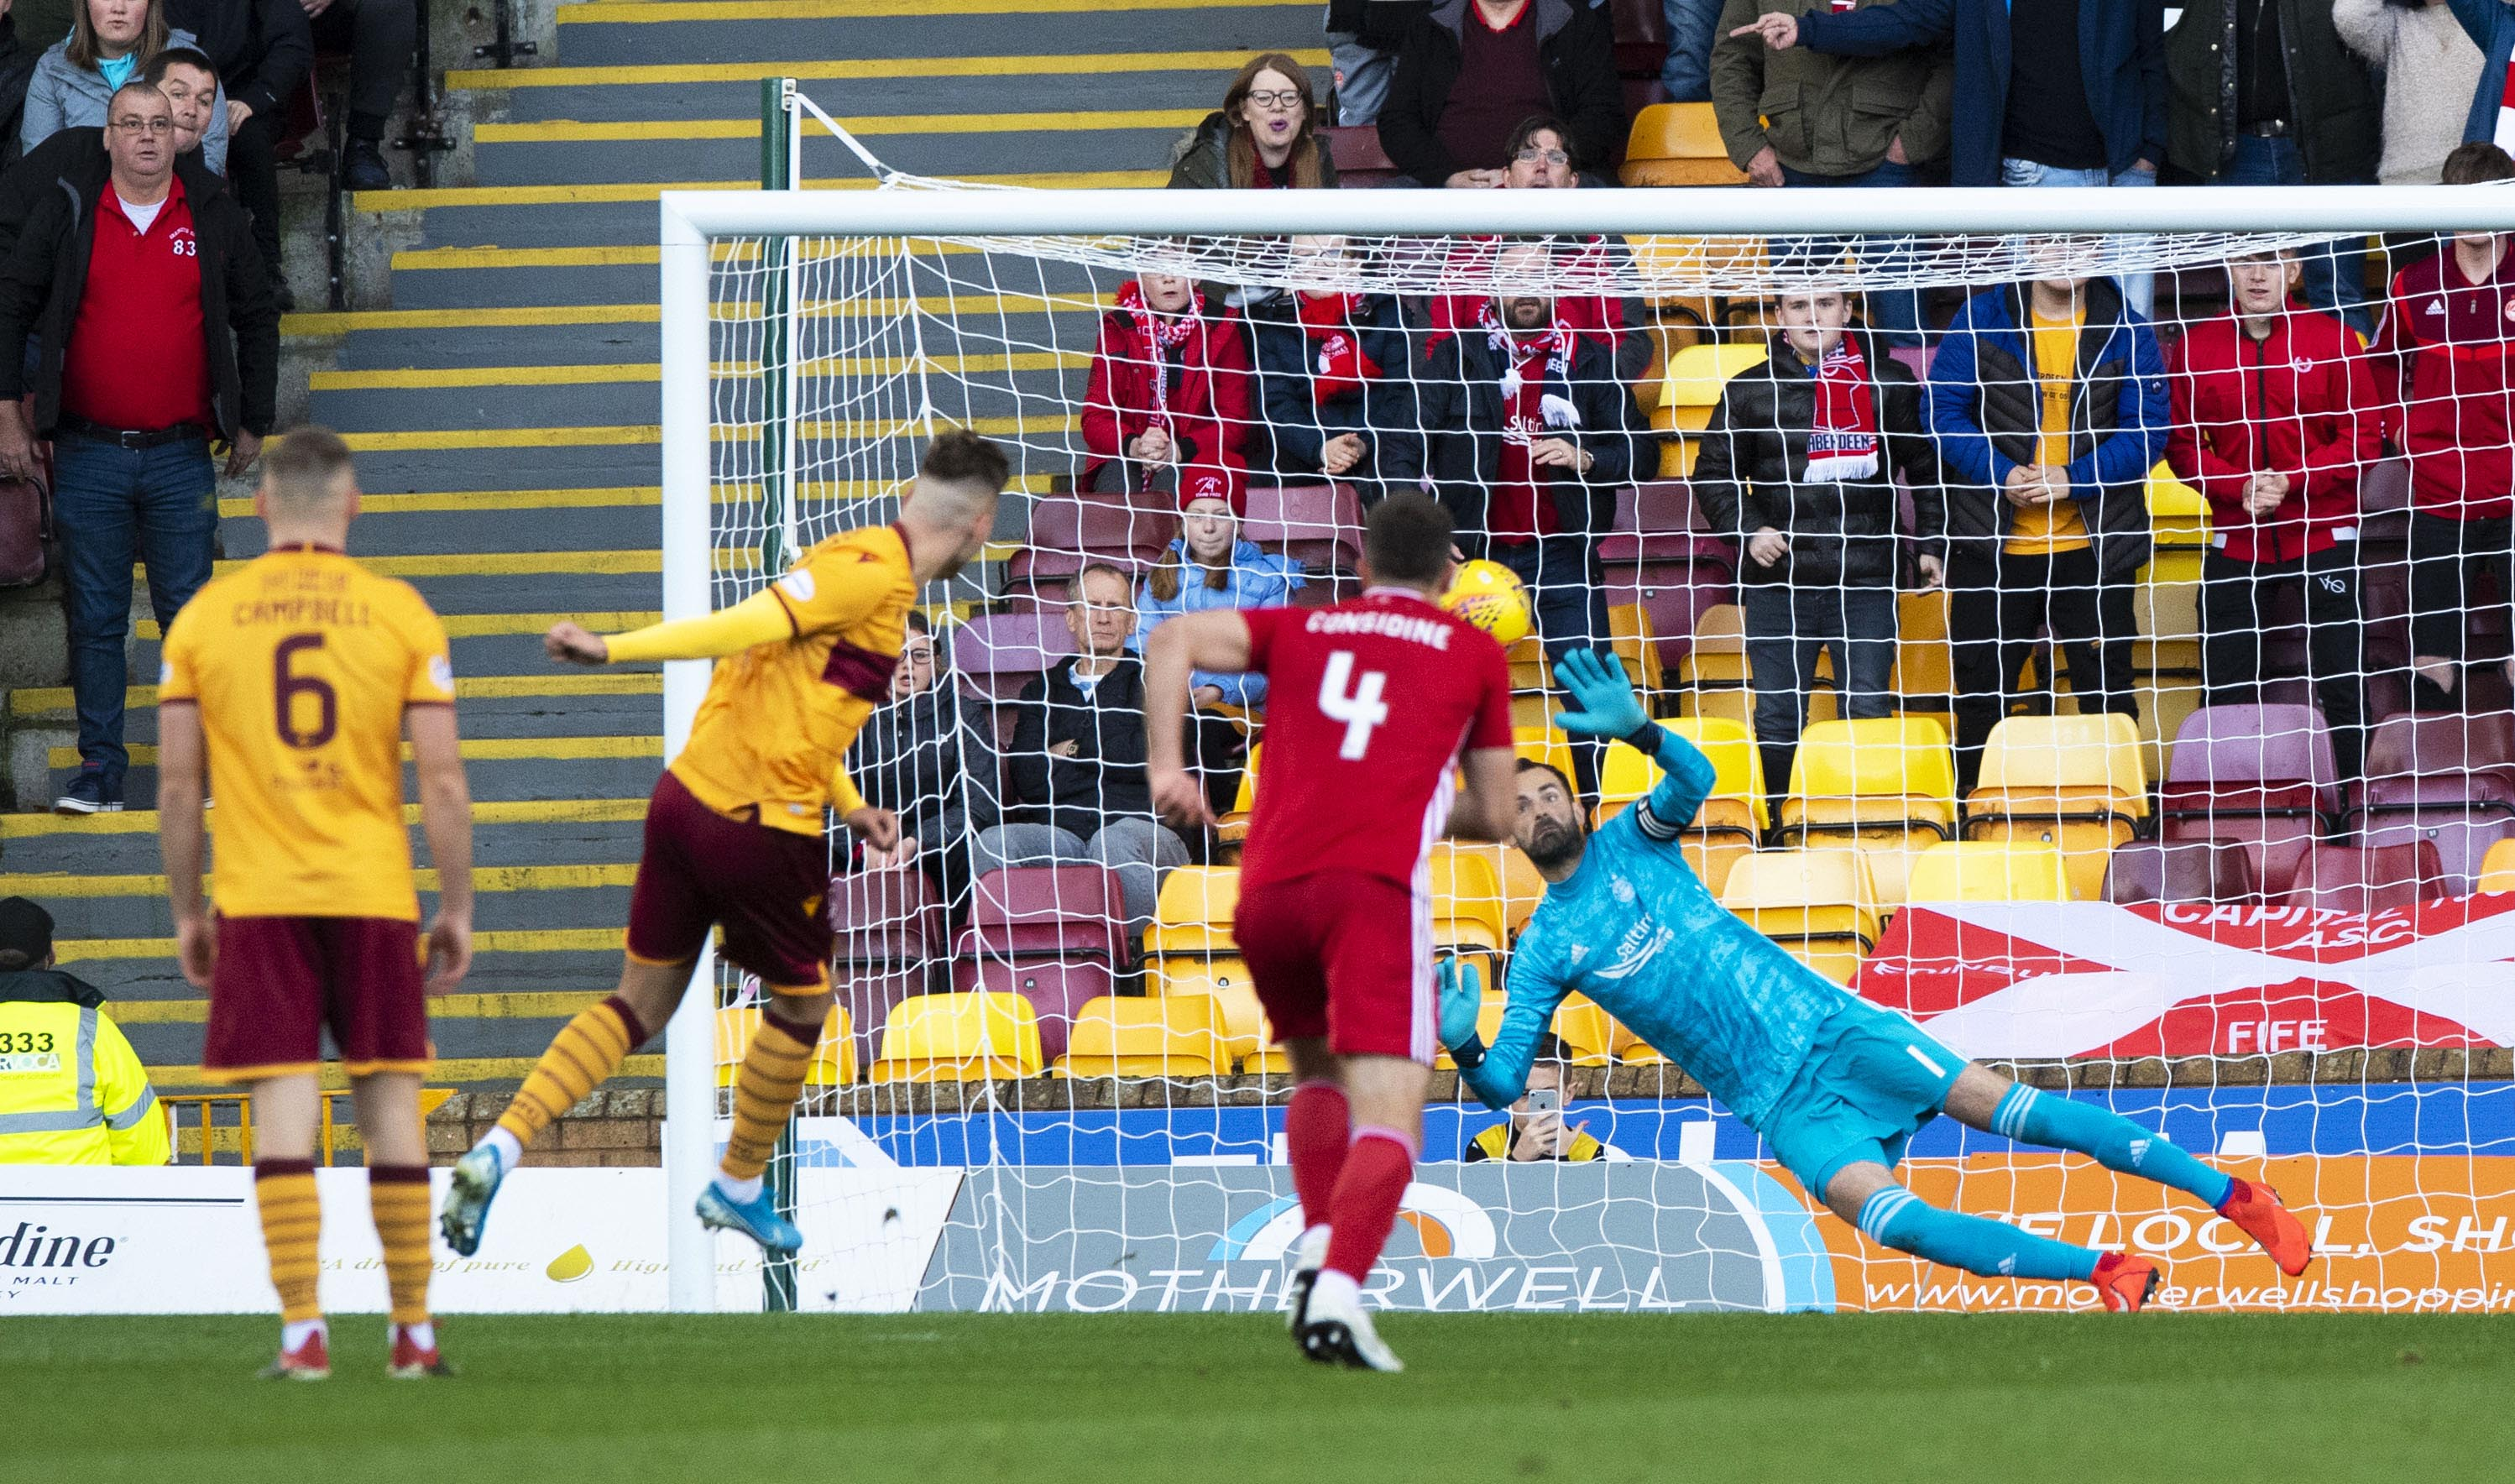 Aberdeen's Joe Lewis is pictured saving Motherwell's James Scotts's penalty at Fir Park.